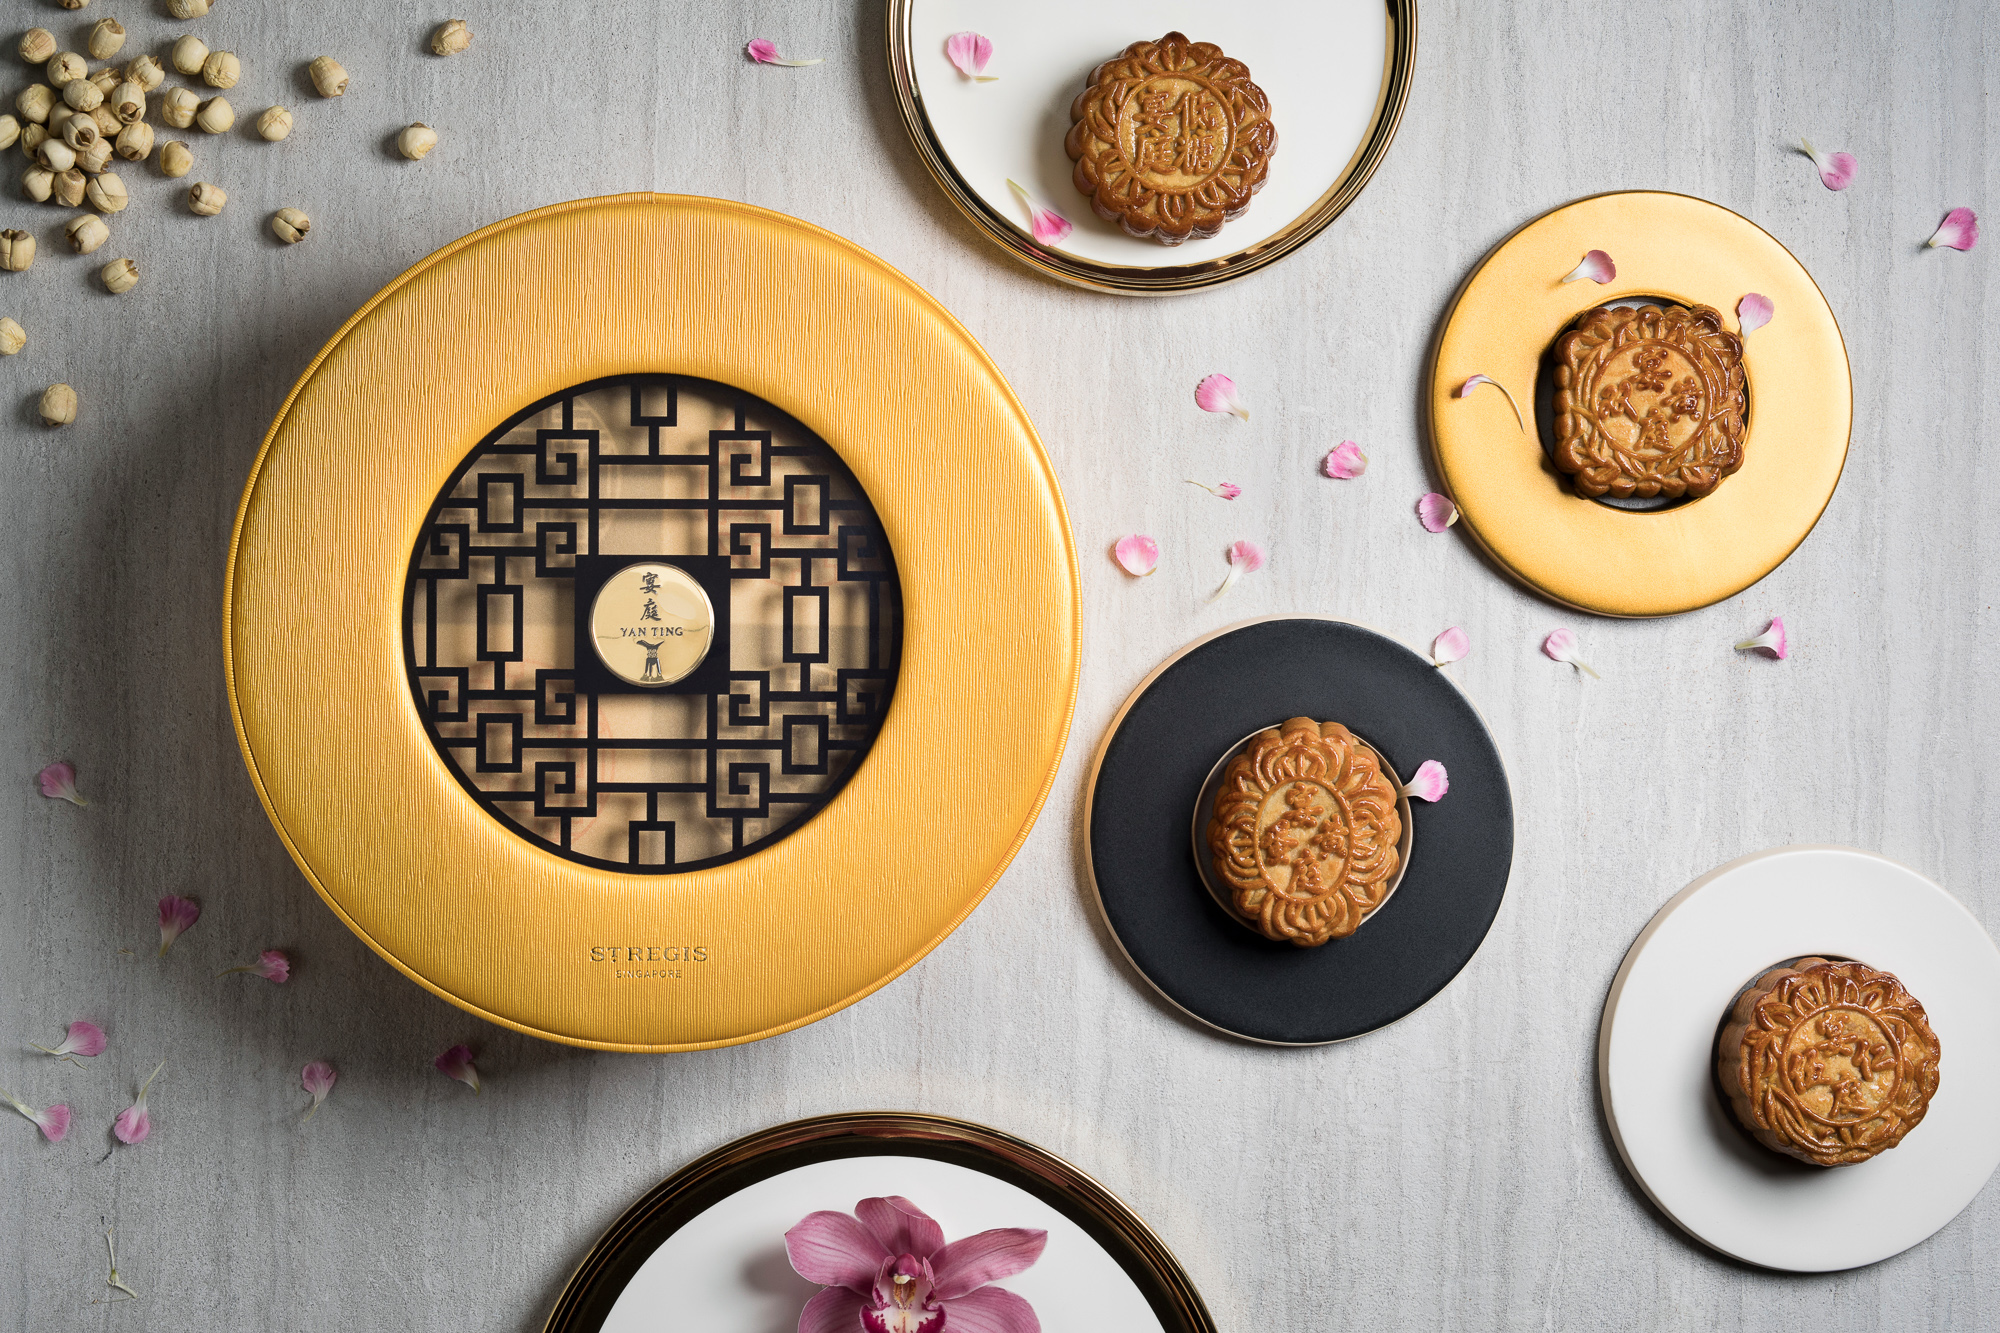 Mid-Autumn-2017-at-Yan-Ting-The-St.-Regis-Singapore-Exceptional-Baked-Mooncake-Selection-2.jpg